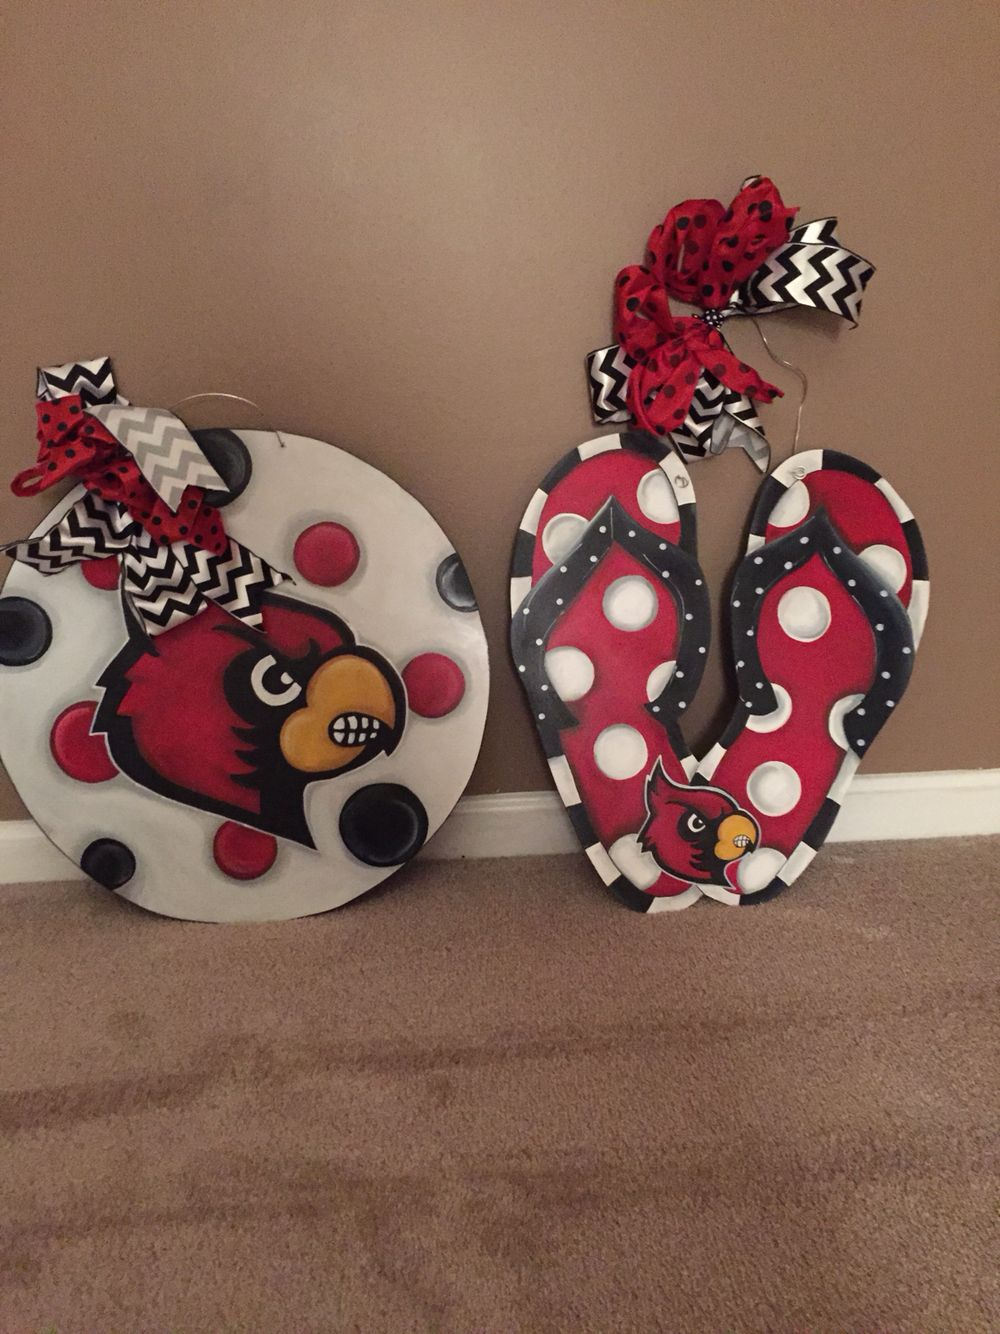 From Chelle Belle's Creations on Shelbyville Road in ...